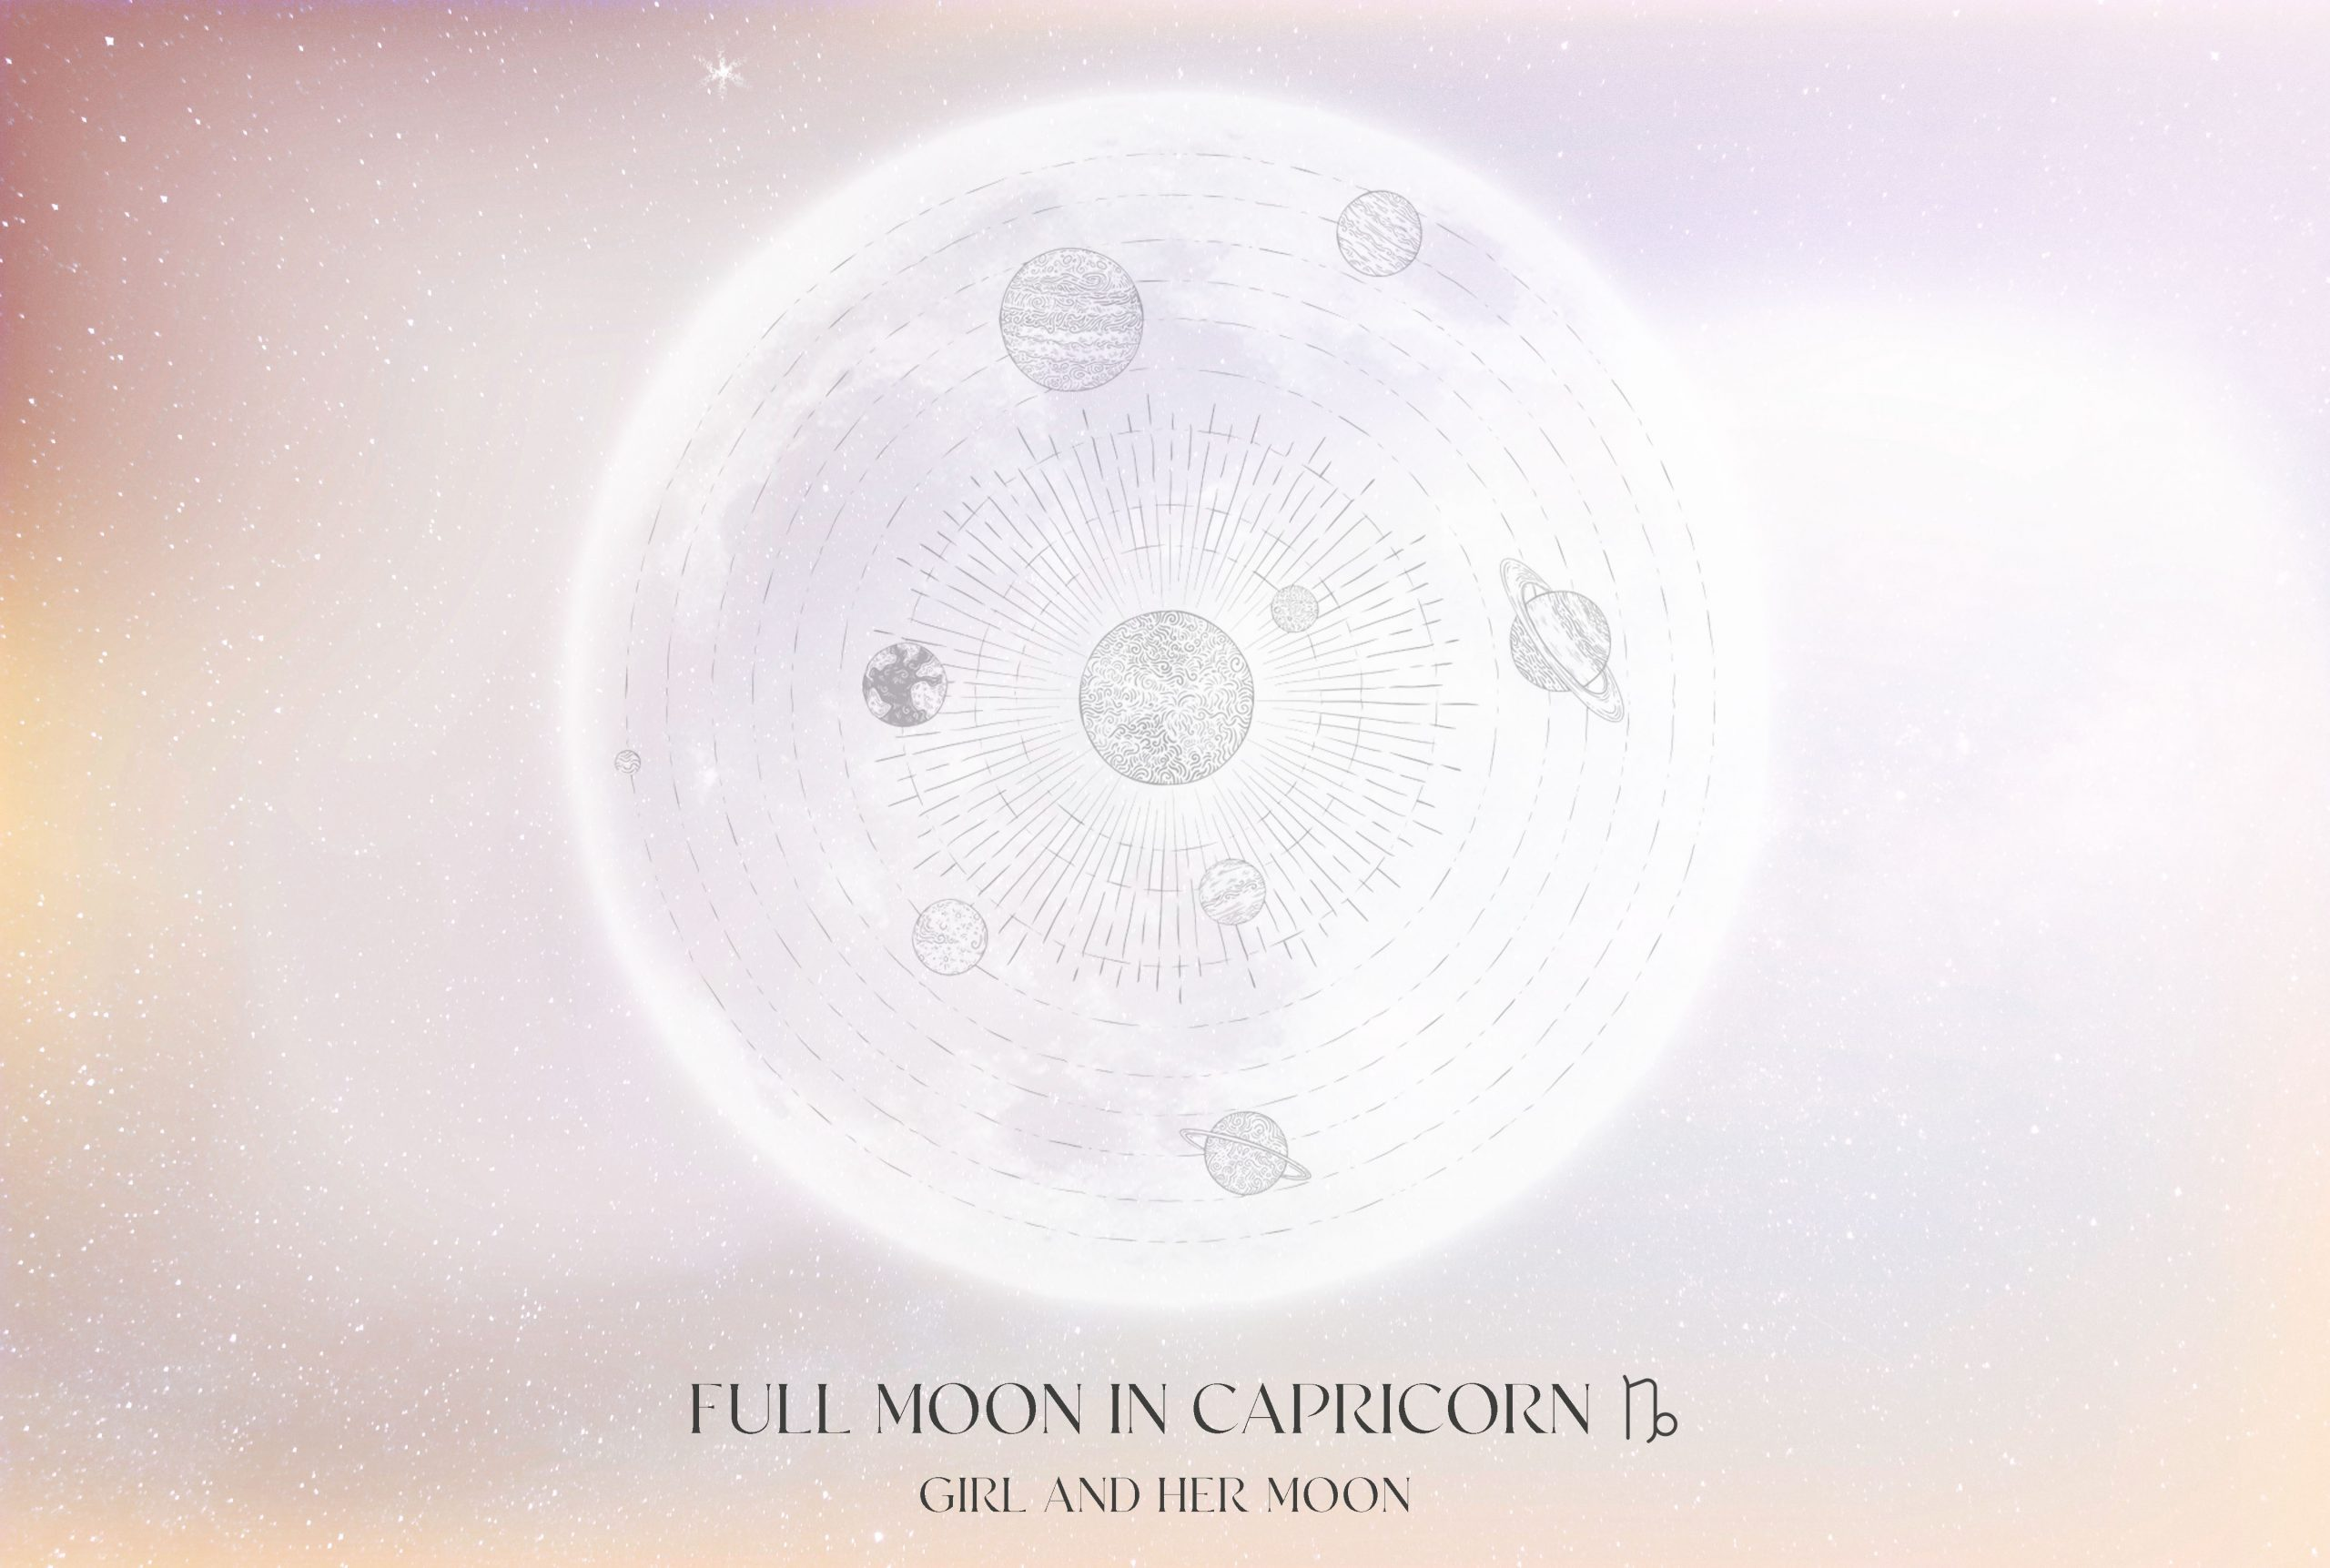 FULL MOON IN CAPRICORN JUNE 2021! ALL YOU NEED TO KNOW + RITUAL GIRL AND HER MOON